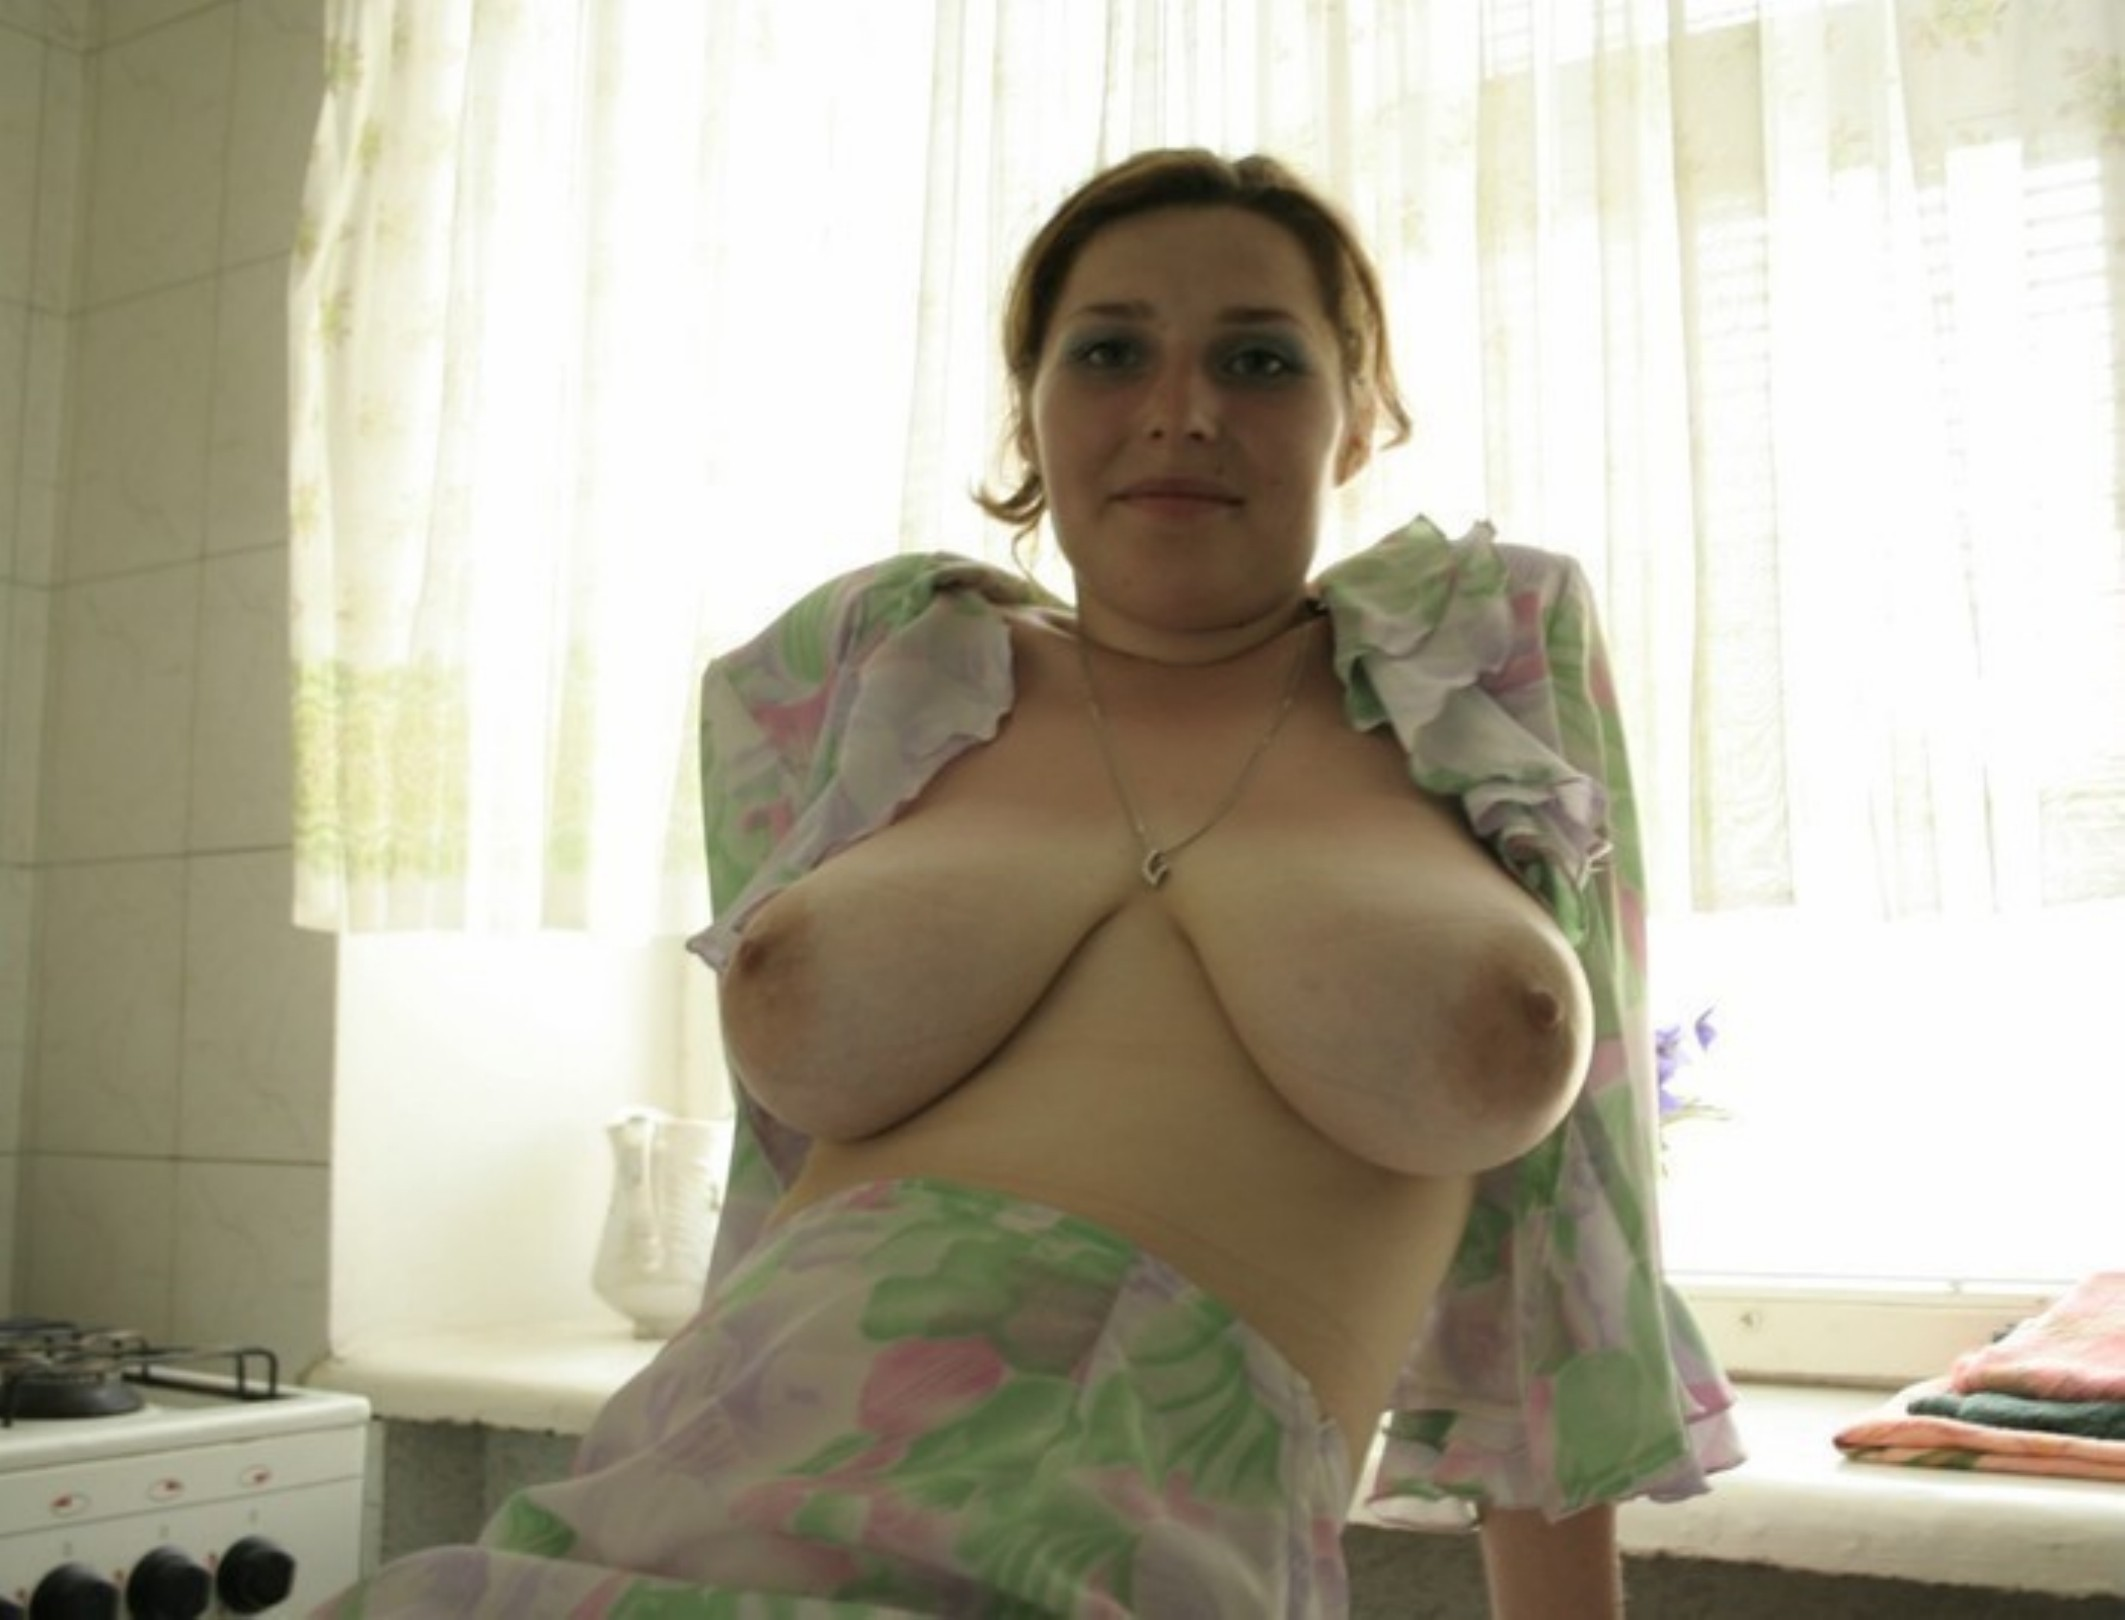 Huge natural tits on skinny body